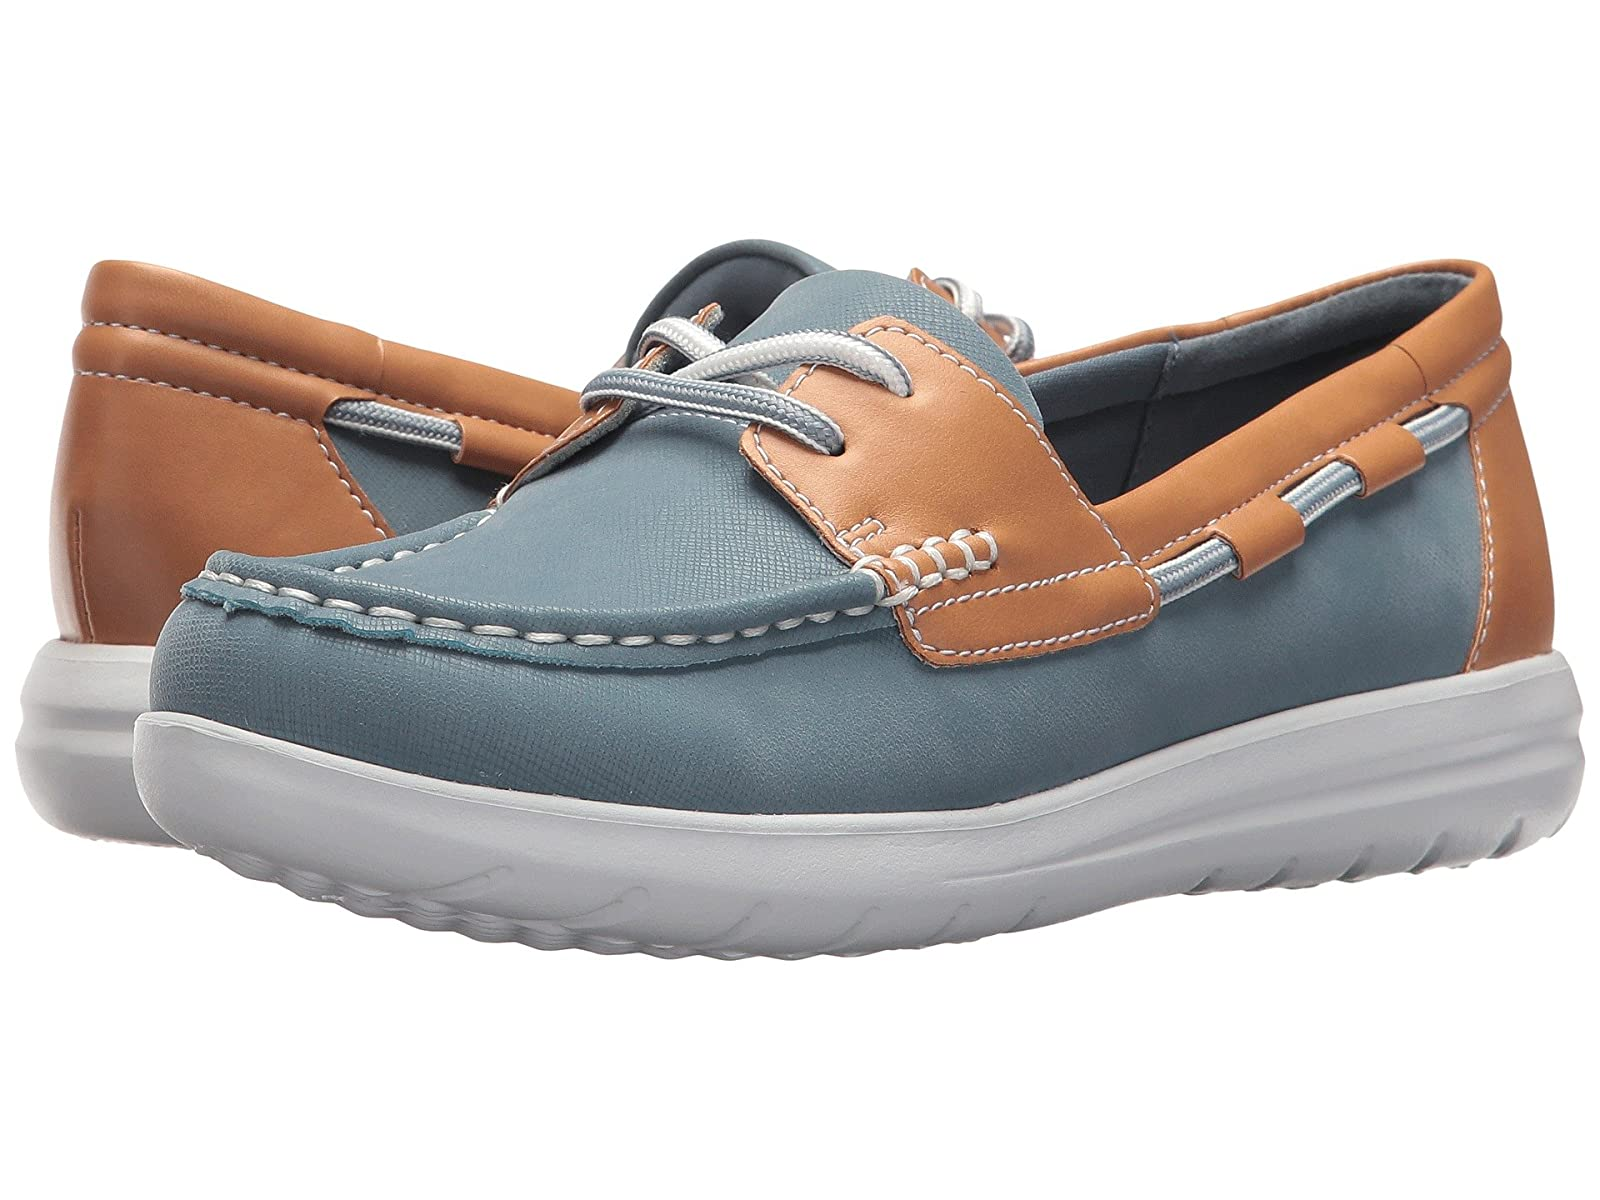 Clarks Jocolin VistaCheap and distinctive eye-catching shoes